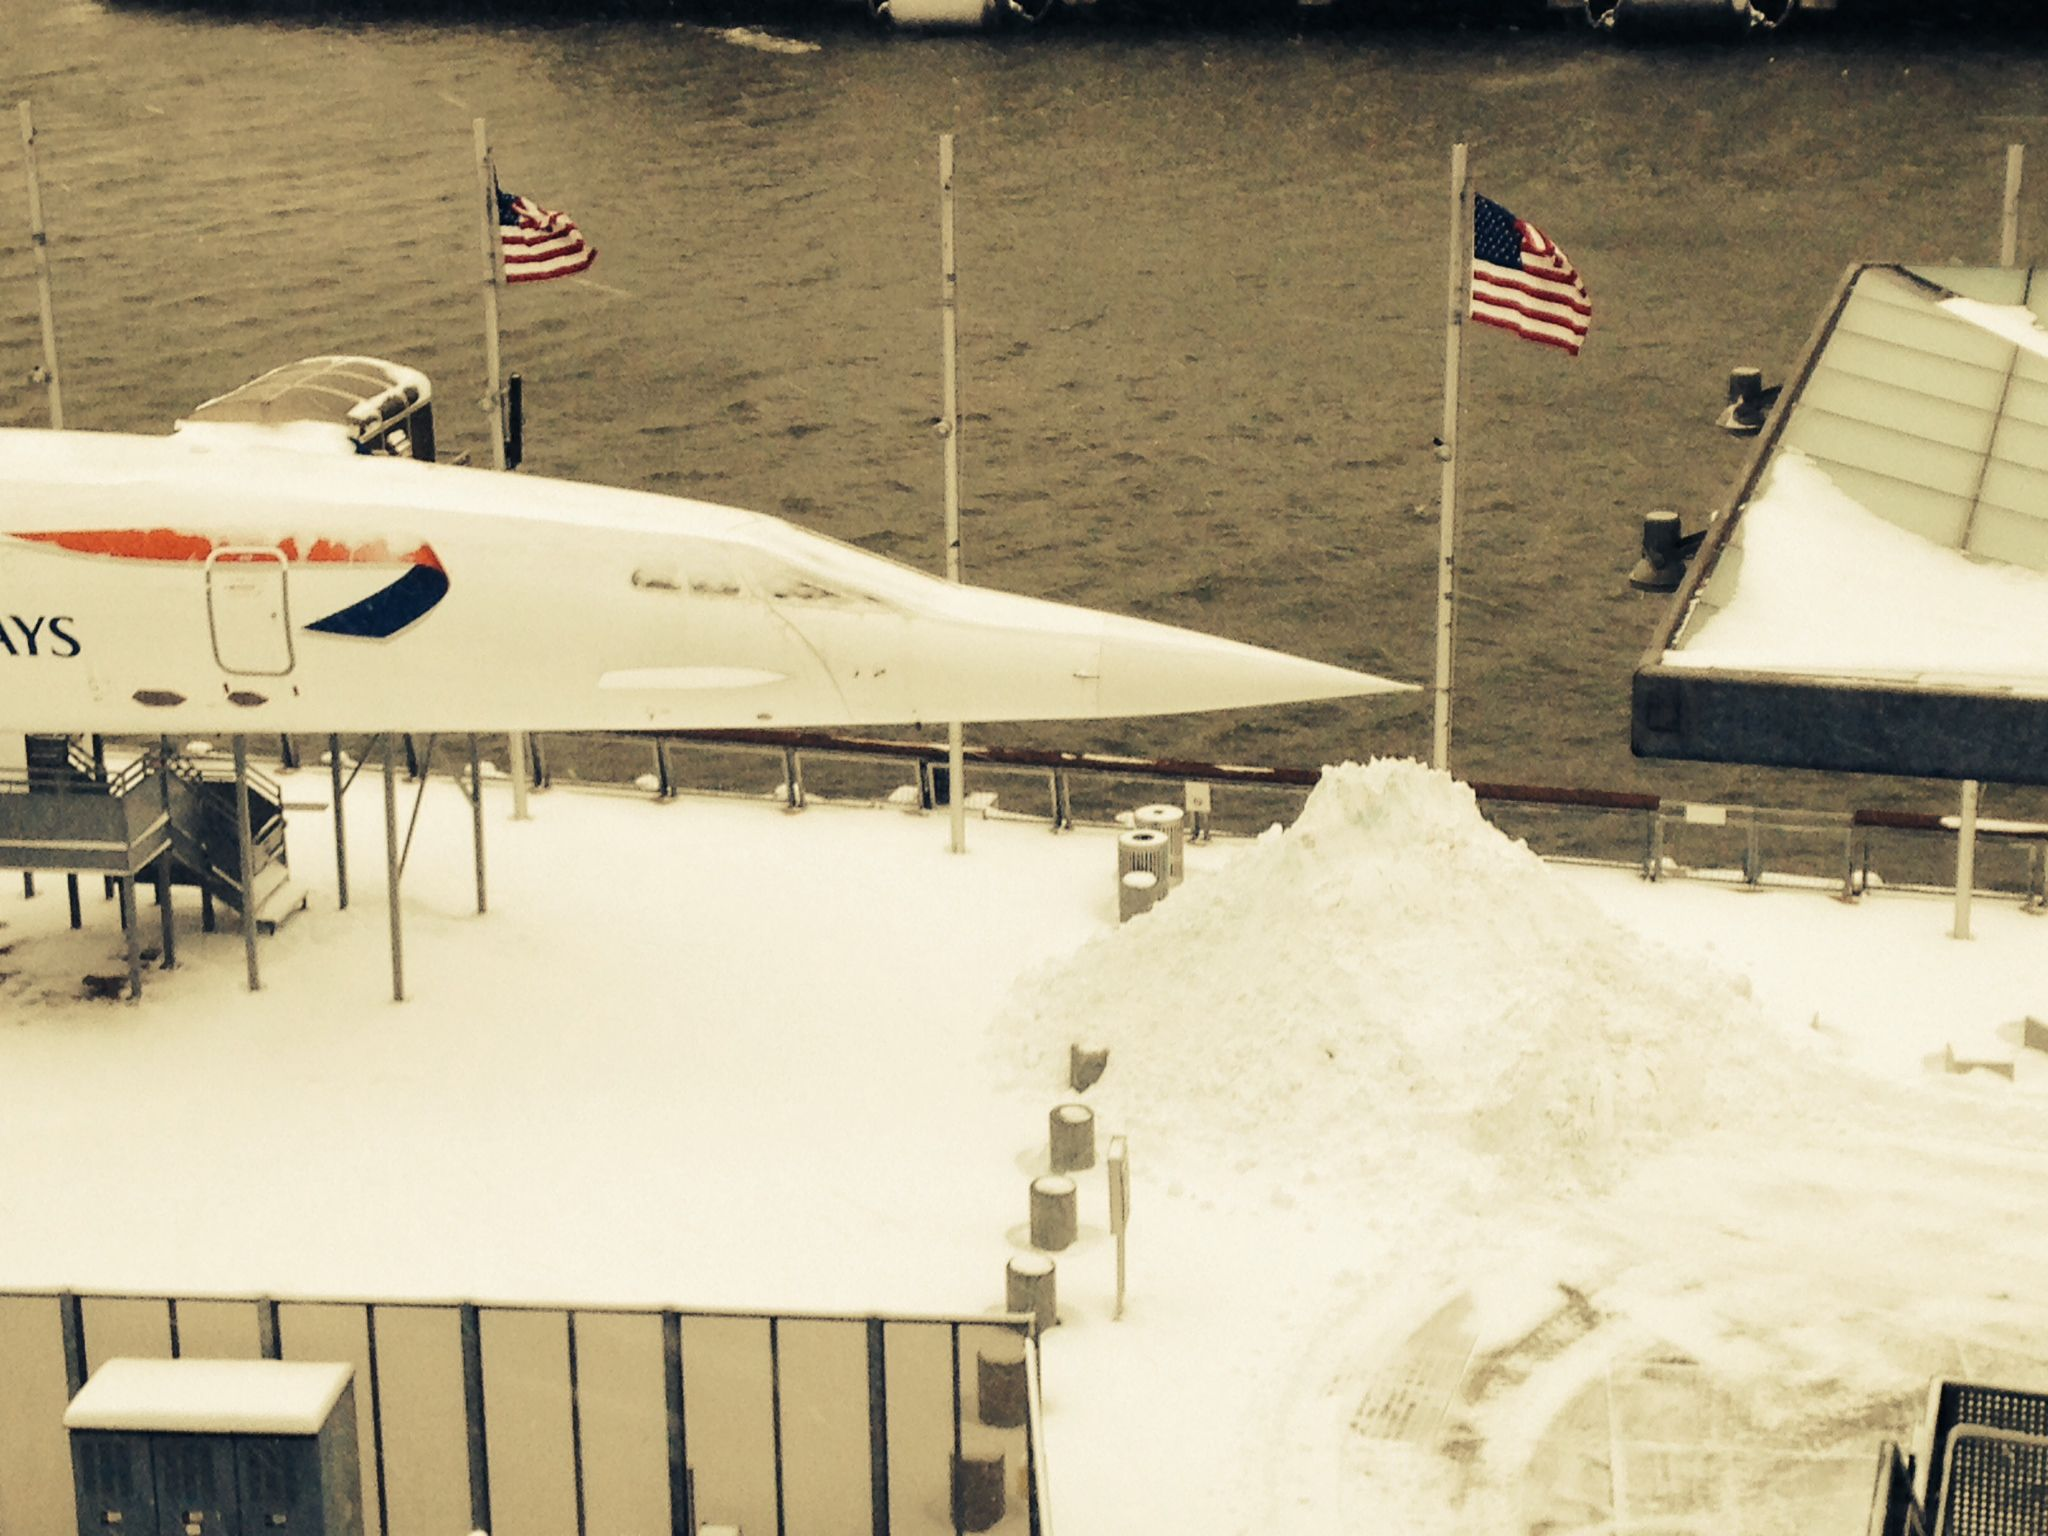 The nose of the Concorde during the #Blizzardof2015 in January 2015.